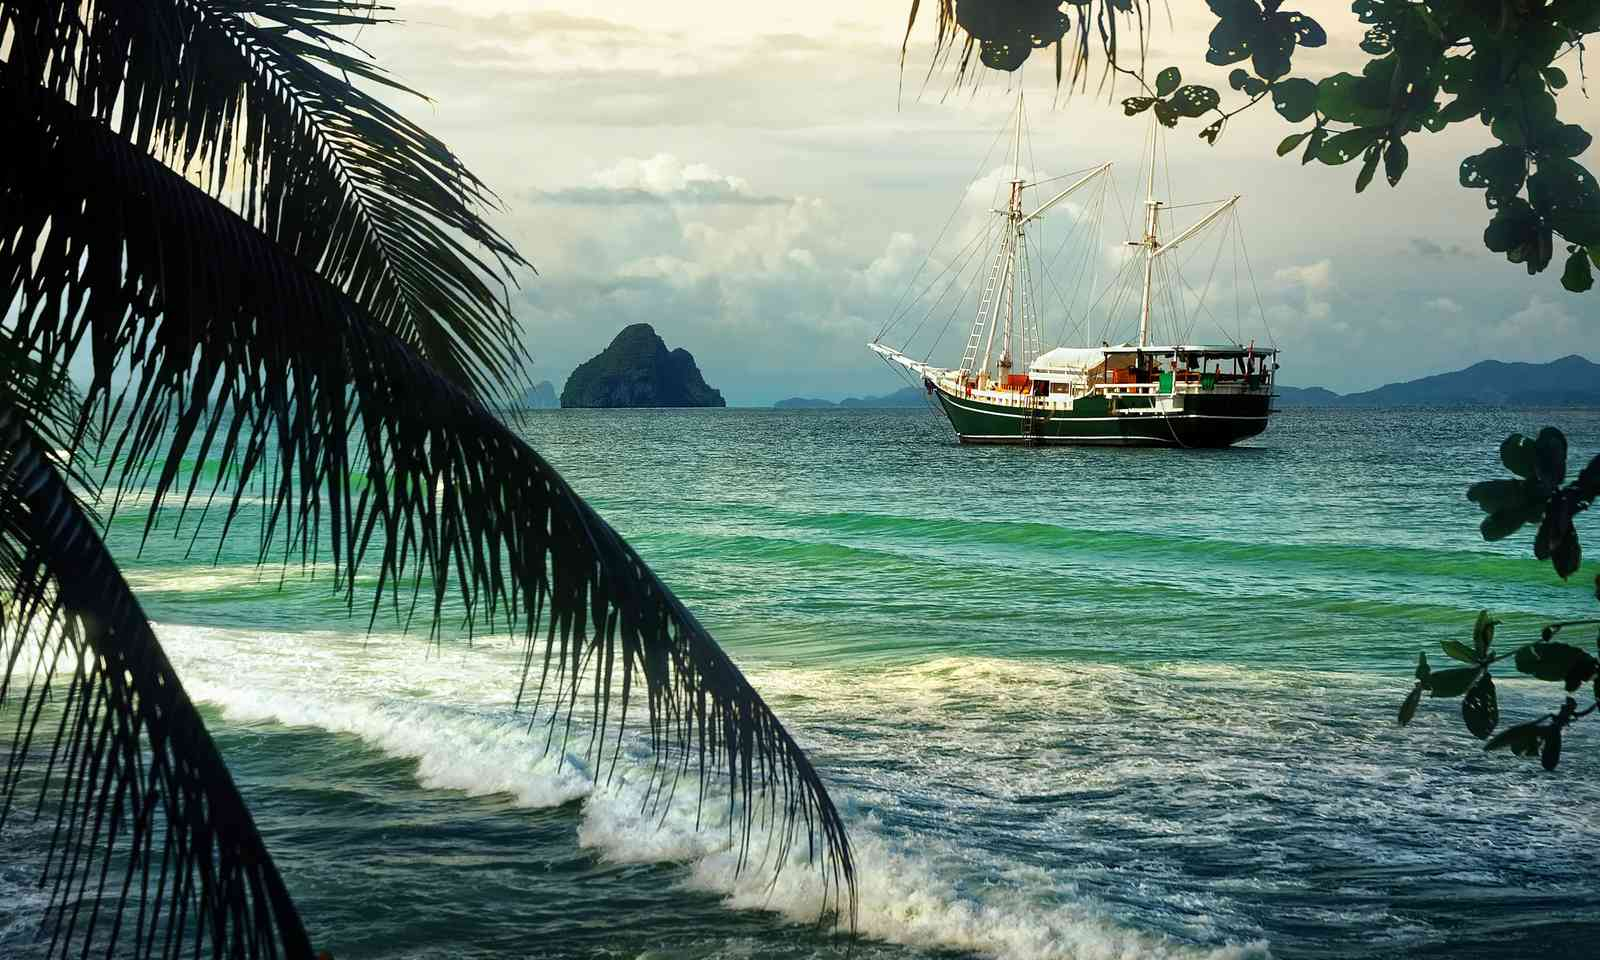 Old sailing ship in tropical landscape (Shutterstock.com)